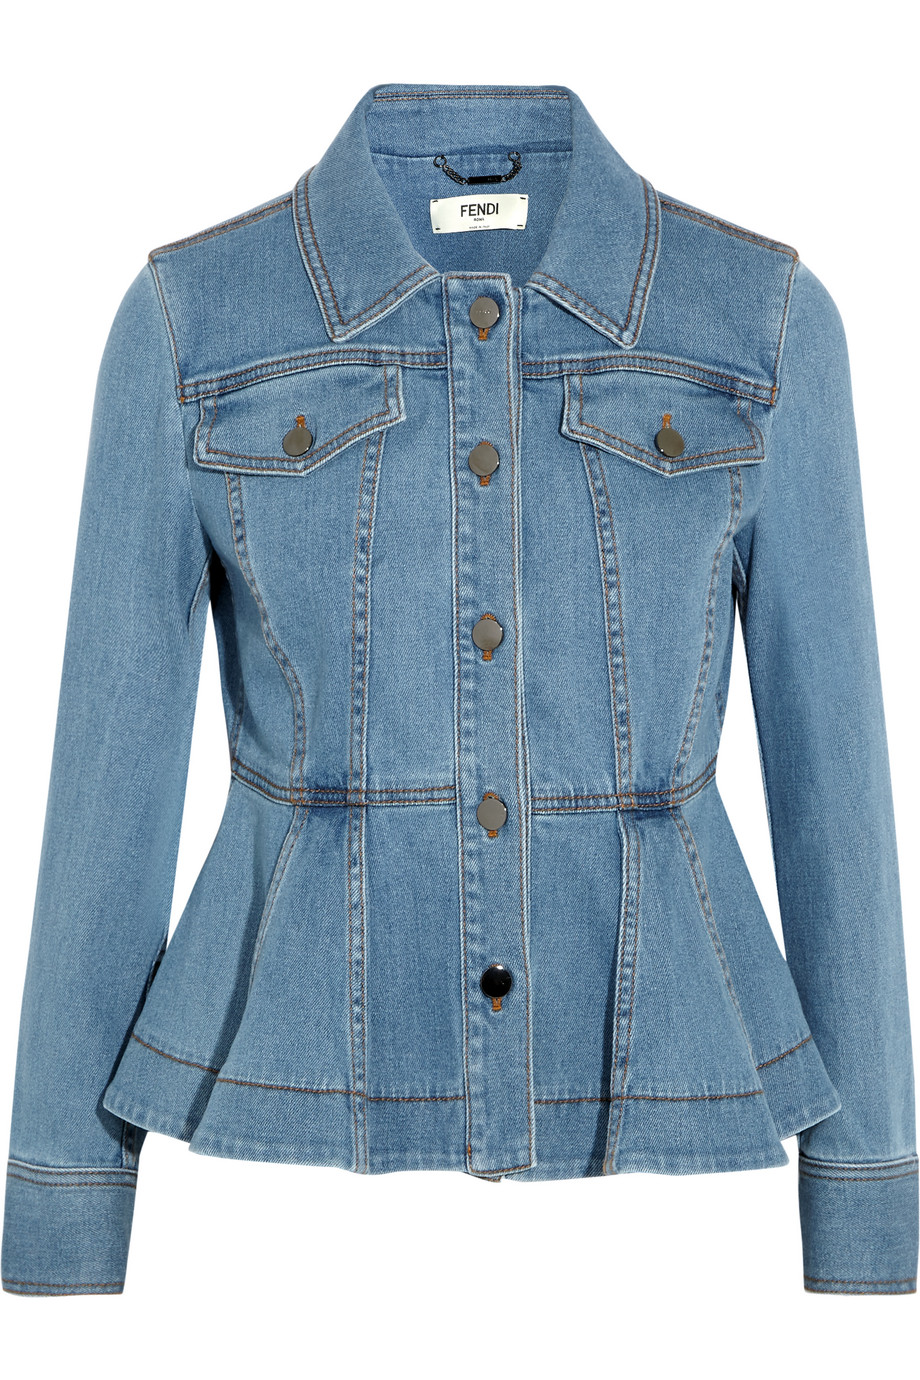 Fendi Stretch-Denim Peplum Jacket, Light Blue, Women's, Size: 40